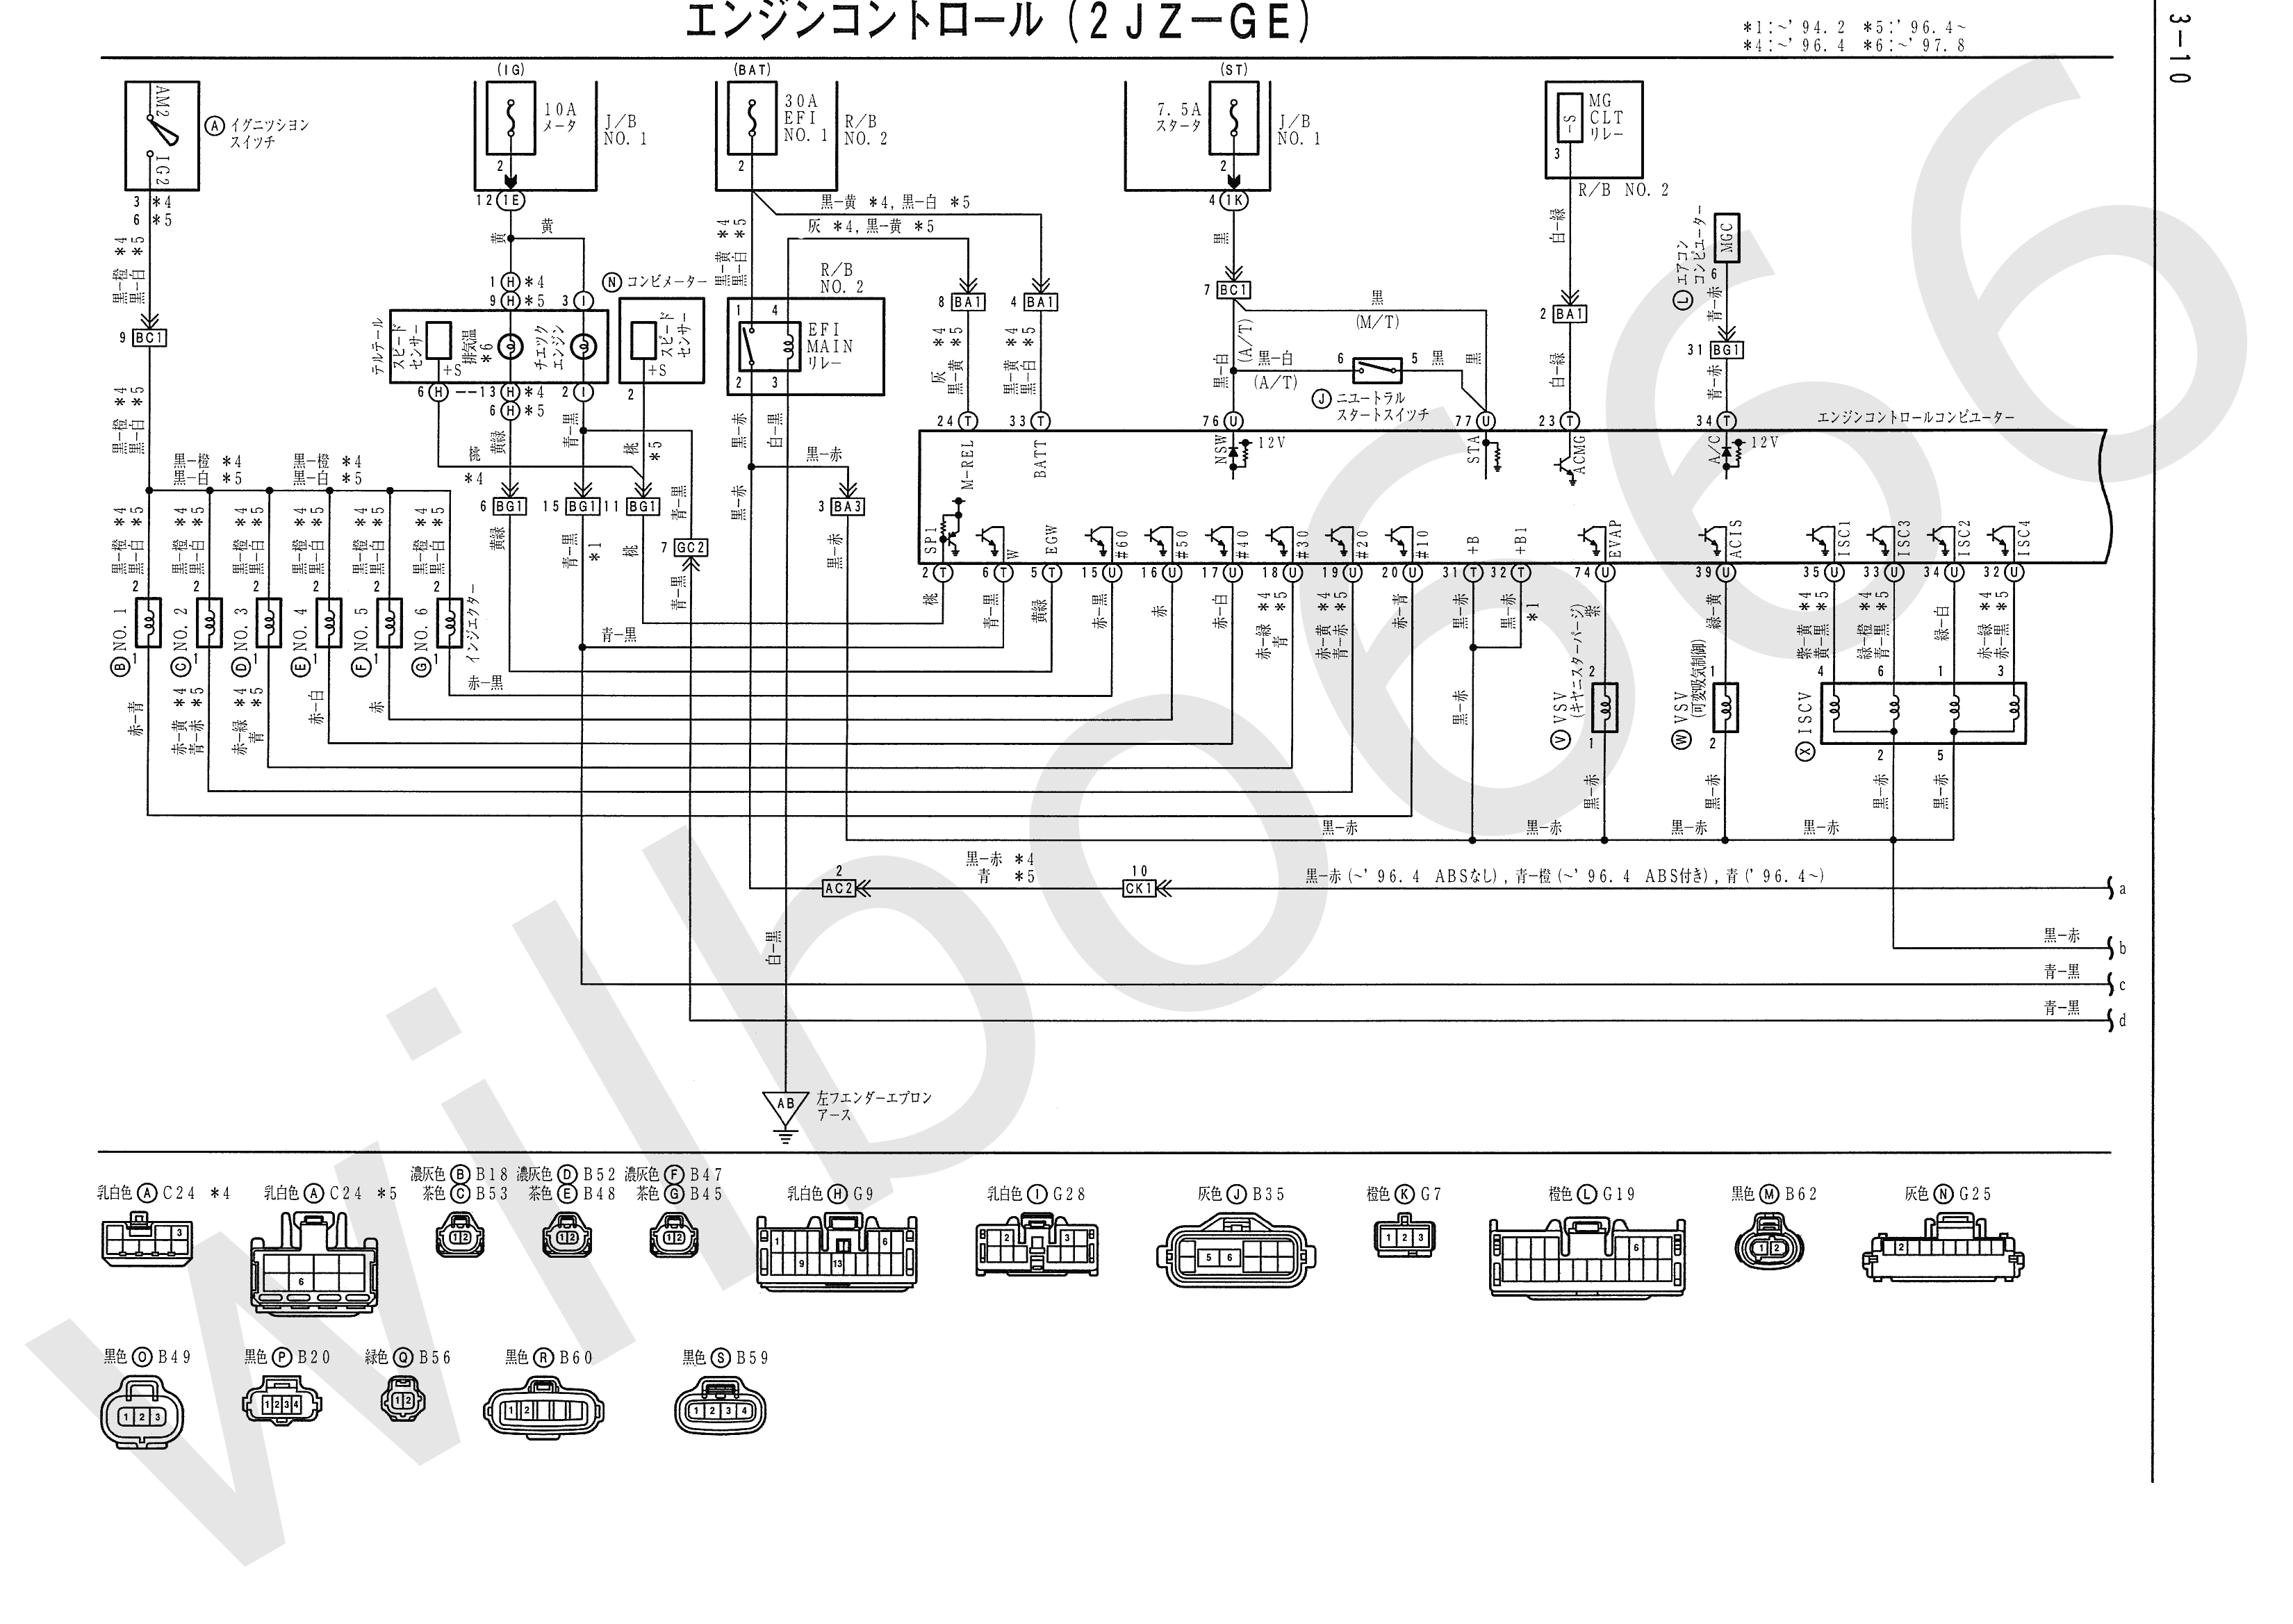 JZA80 Electrical Wiring Diagram 6742505 3 10 wilbo666 2jz ge jza80 supra engine wiring SC300 Pinout Plug Orange Interior at couponss.co